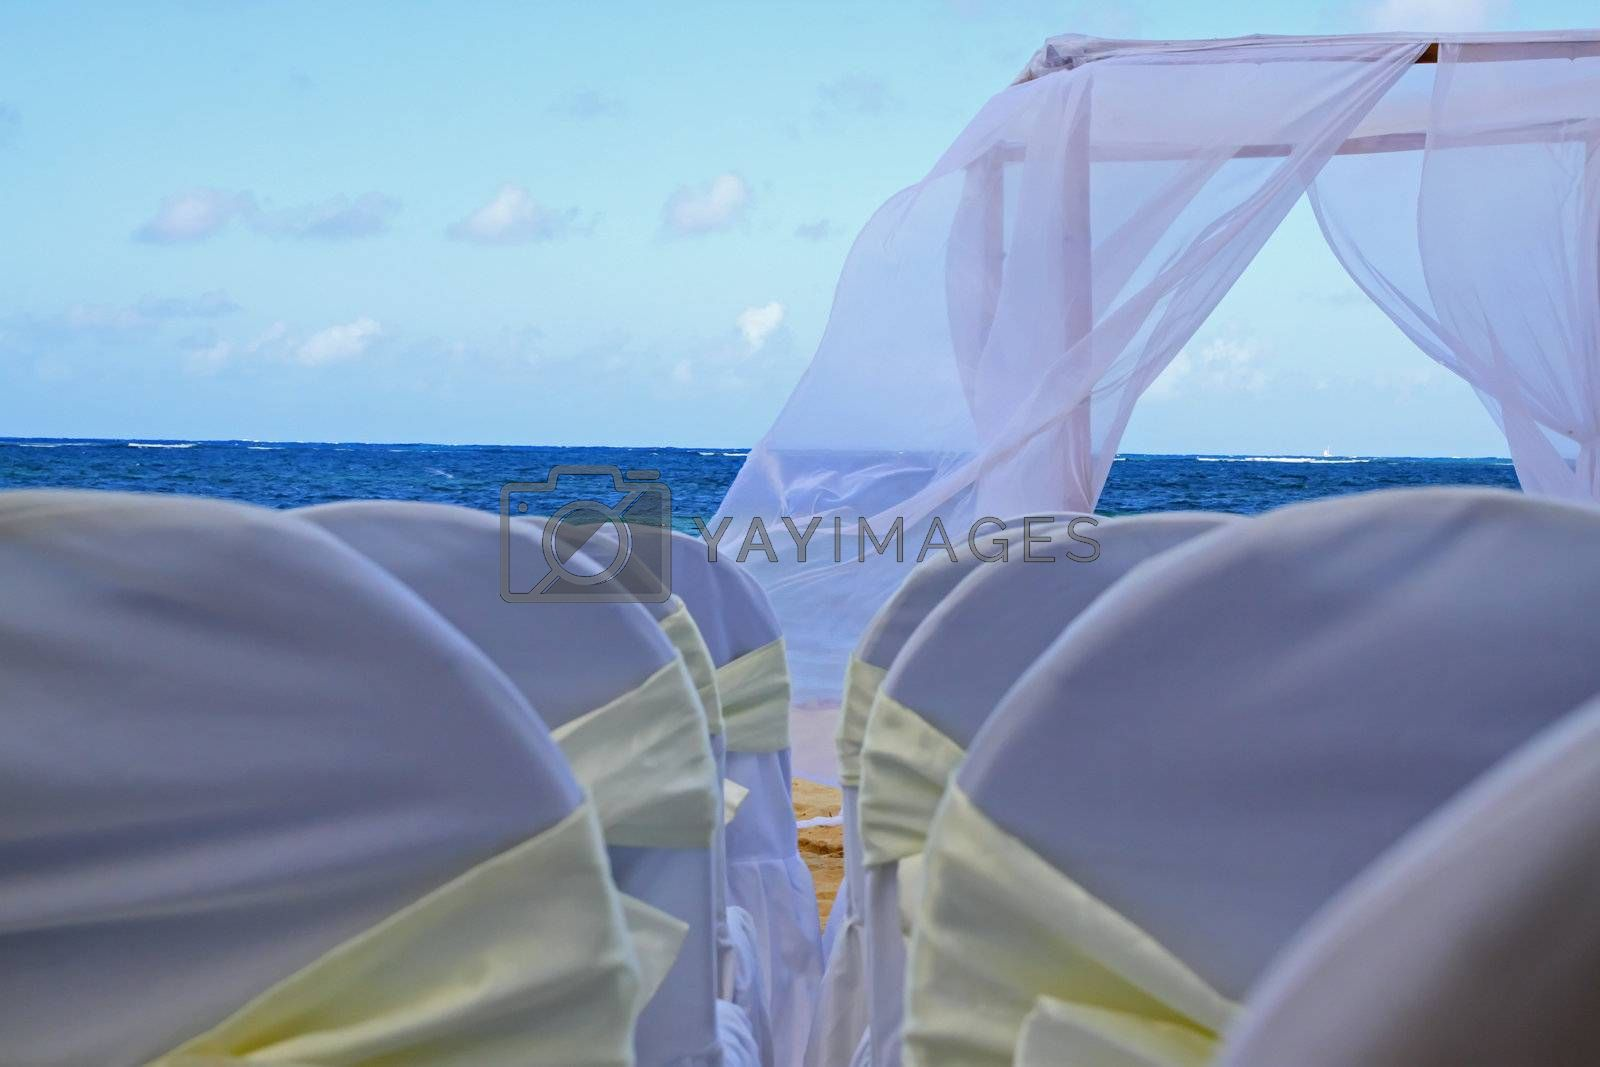 Ribons on chairs laid out for a tropical wedding